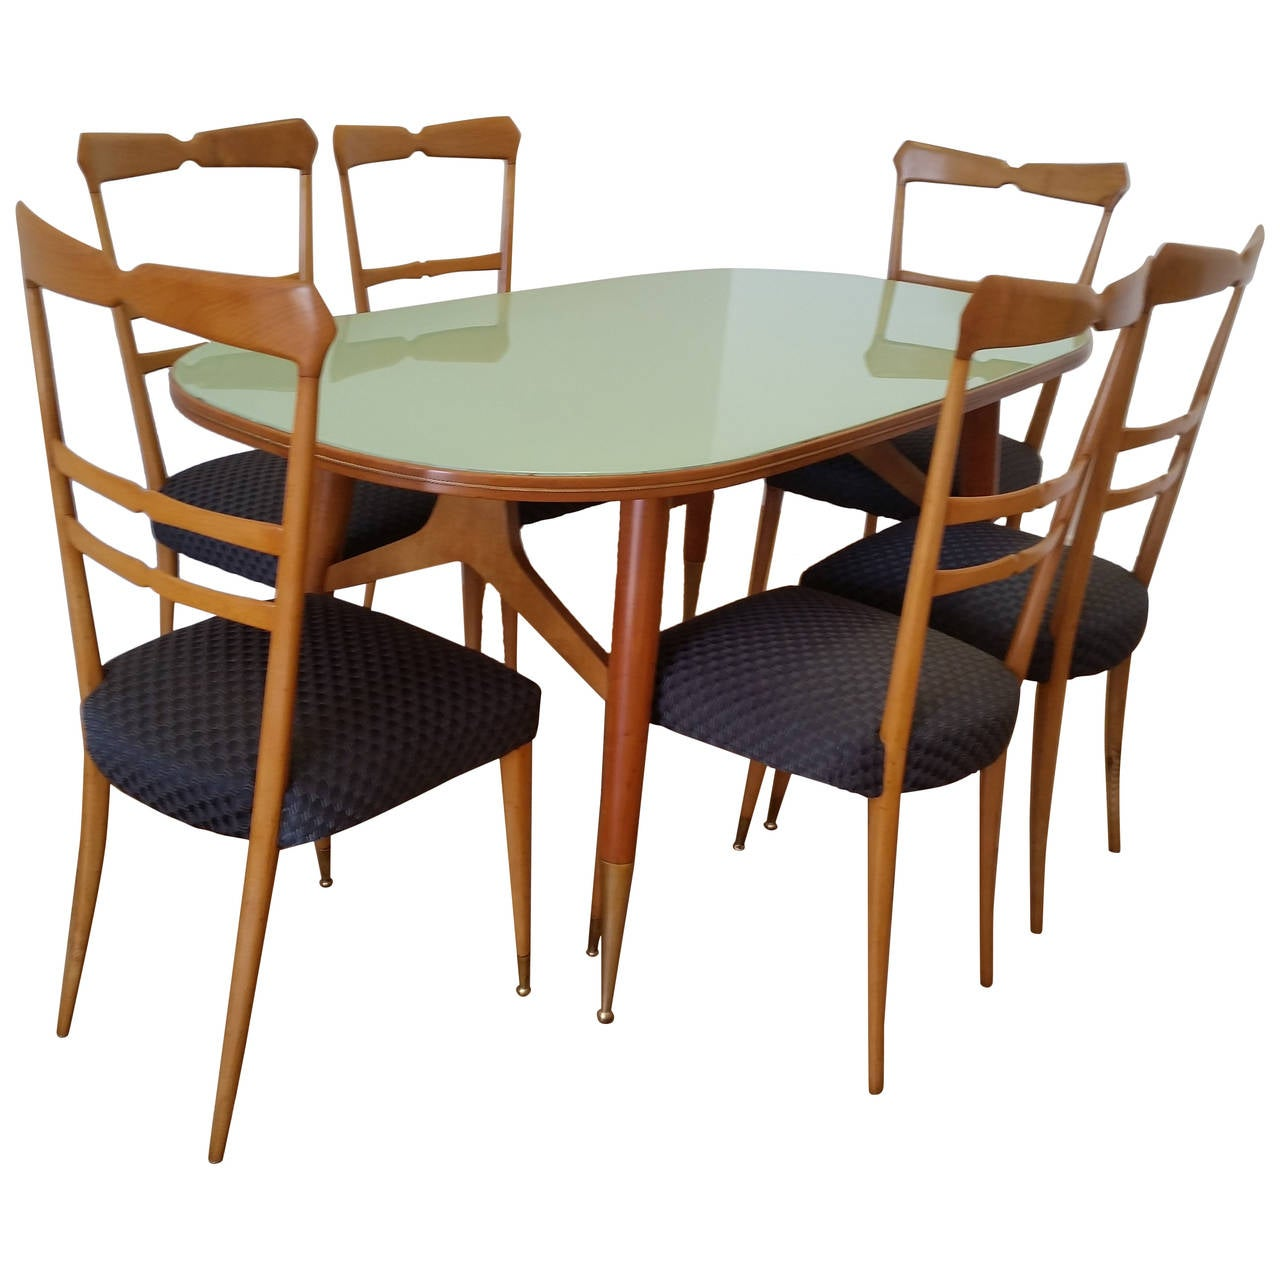 Ico And Luisa Parisi Dining Table And Six Chairs For Sale